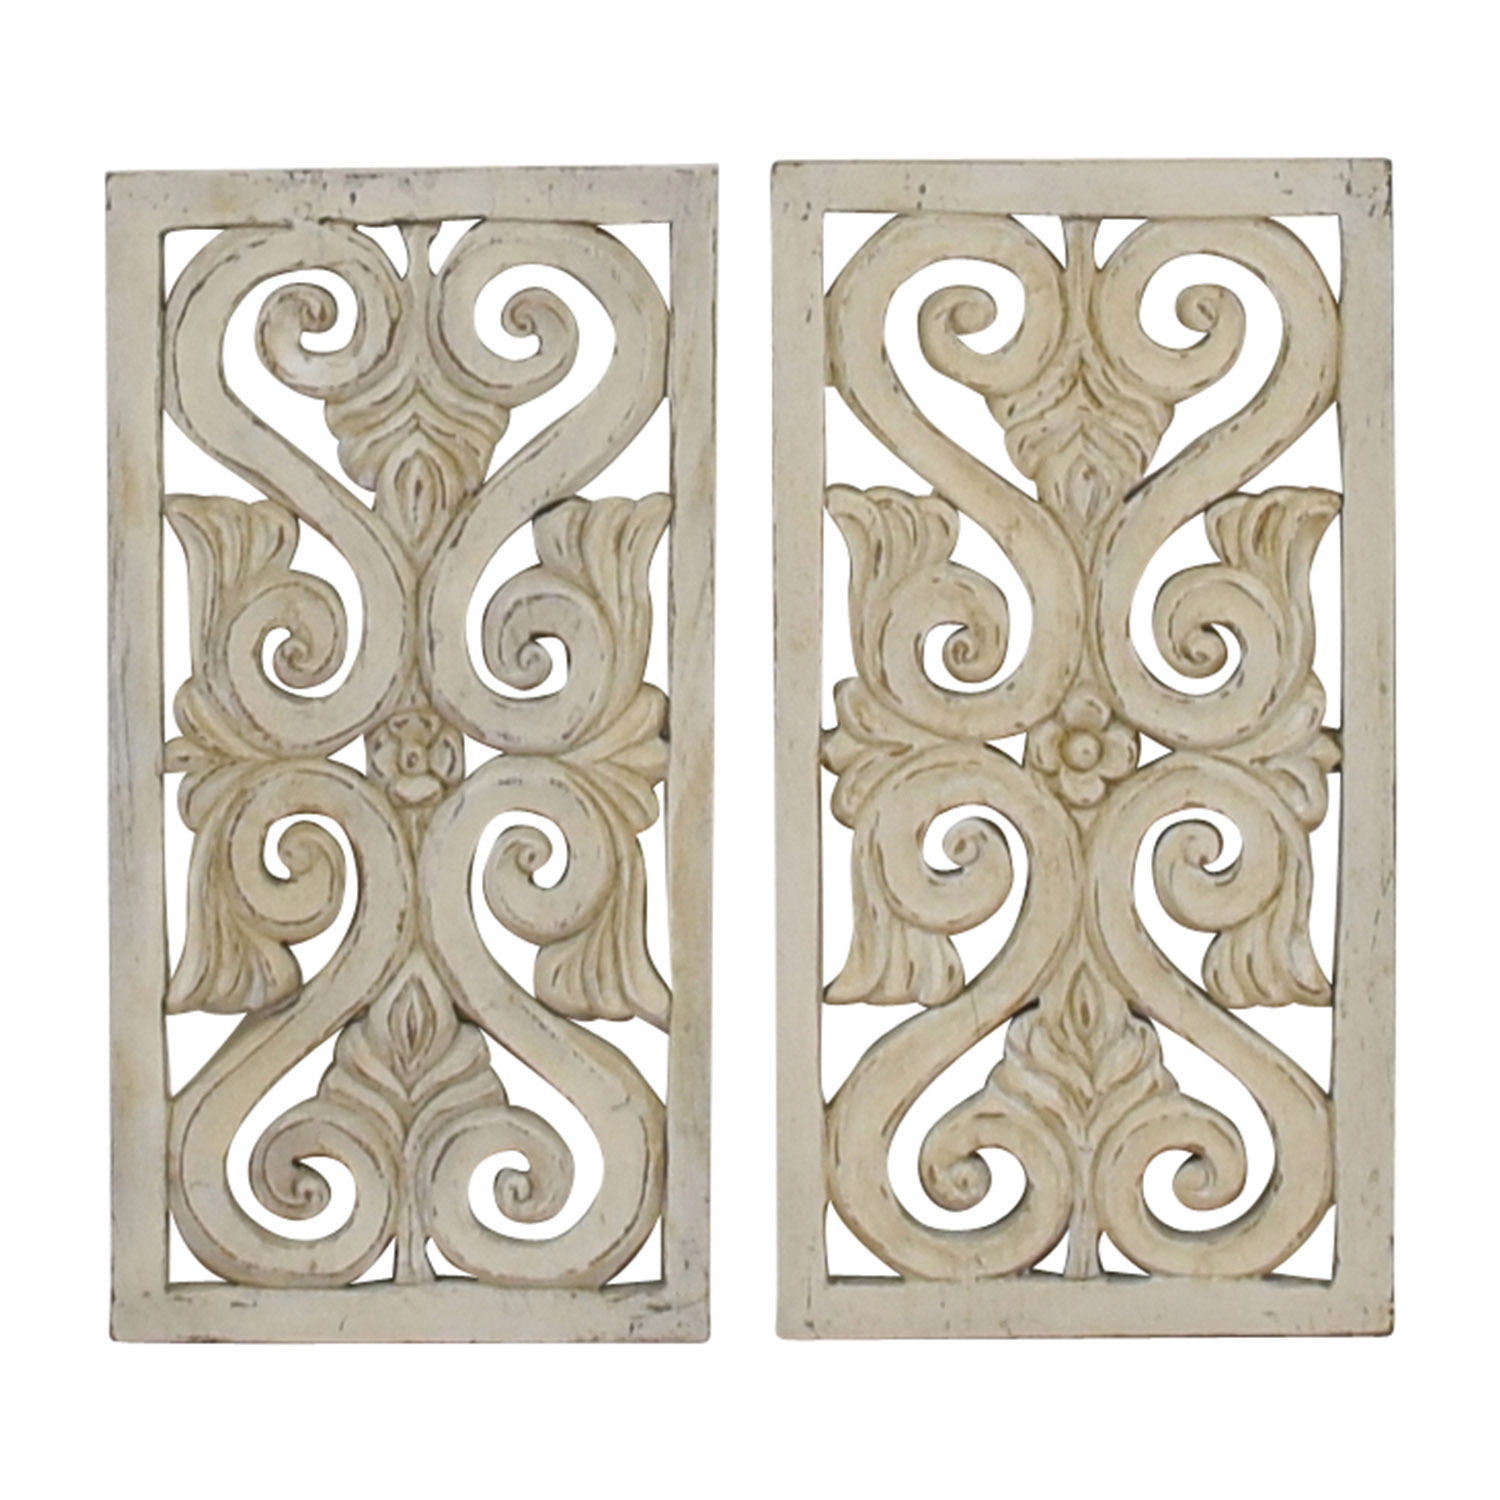 Distressed White Wood Wall Sculpture used